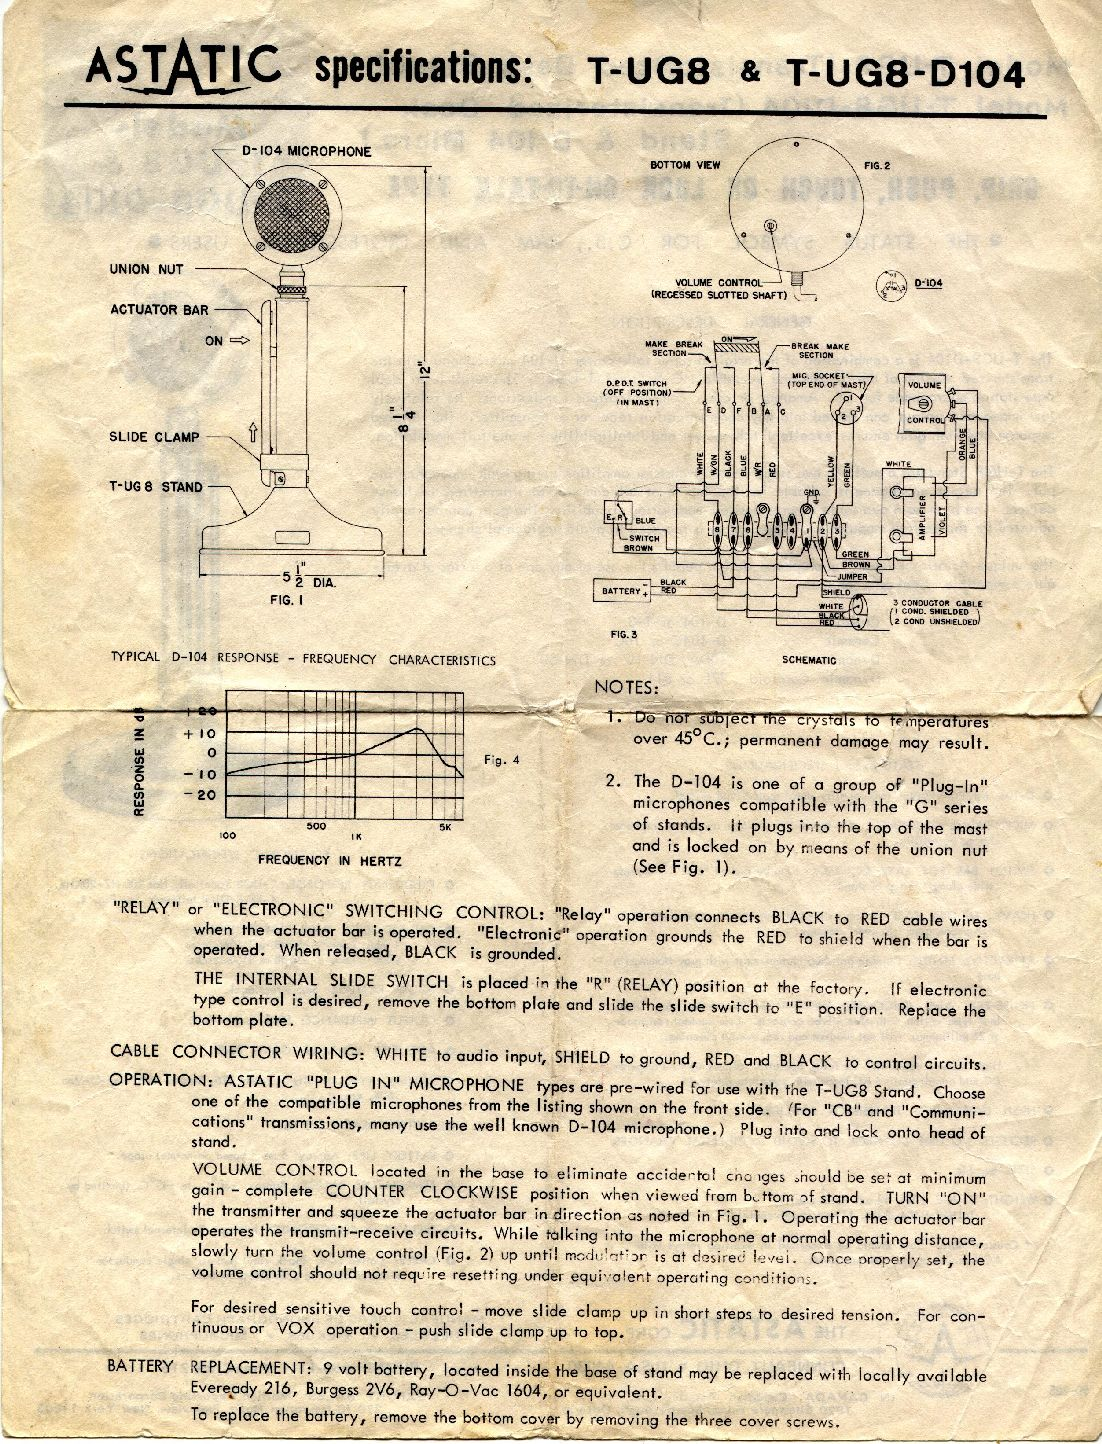 Astatic Mic Wiring Diagram | Electronic Schematics collections on pioneer wiring diagrams, imperial wiring diagrams, kenwood wiring diagrams, bose wiring diagrams, apc wiring diagrams, av wiring diagrams, yamaha wiring diagrams, turner microphones wiring diagrams, sony wiring diagrams, shure microphone wiring diagrams, lg wiring diagrams, siemens wiring diagrams, switchcraft wiring diagrams, mic wiring diagrams, panasonic wiring diagrams, fisher wiring diagrams, nec wiring diagrams, ge wiring diagrams, empire wiring diagrams, night eagle microphone wiring diagrams,